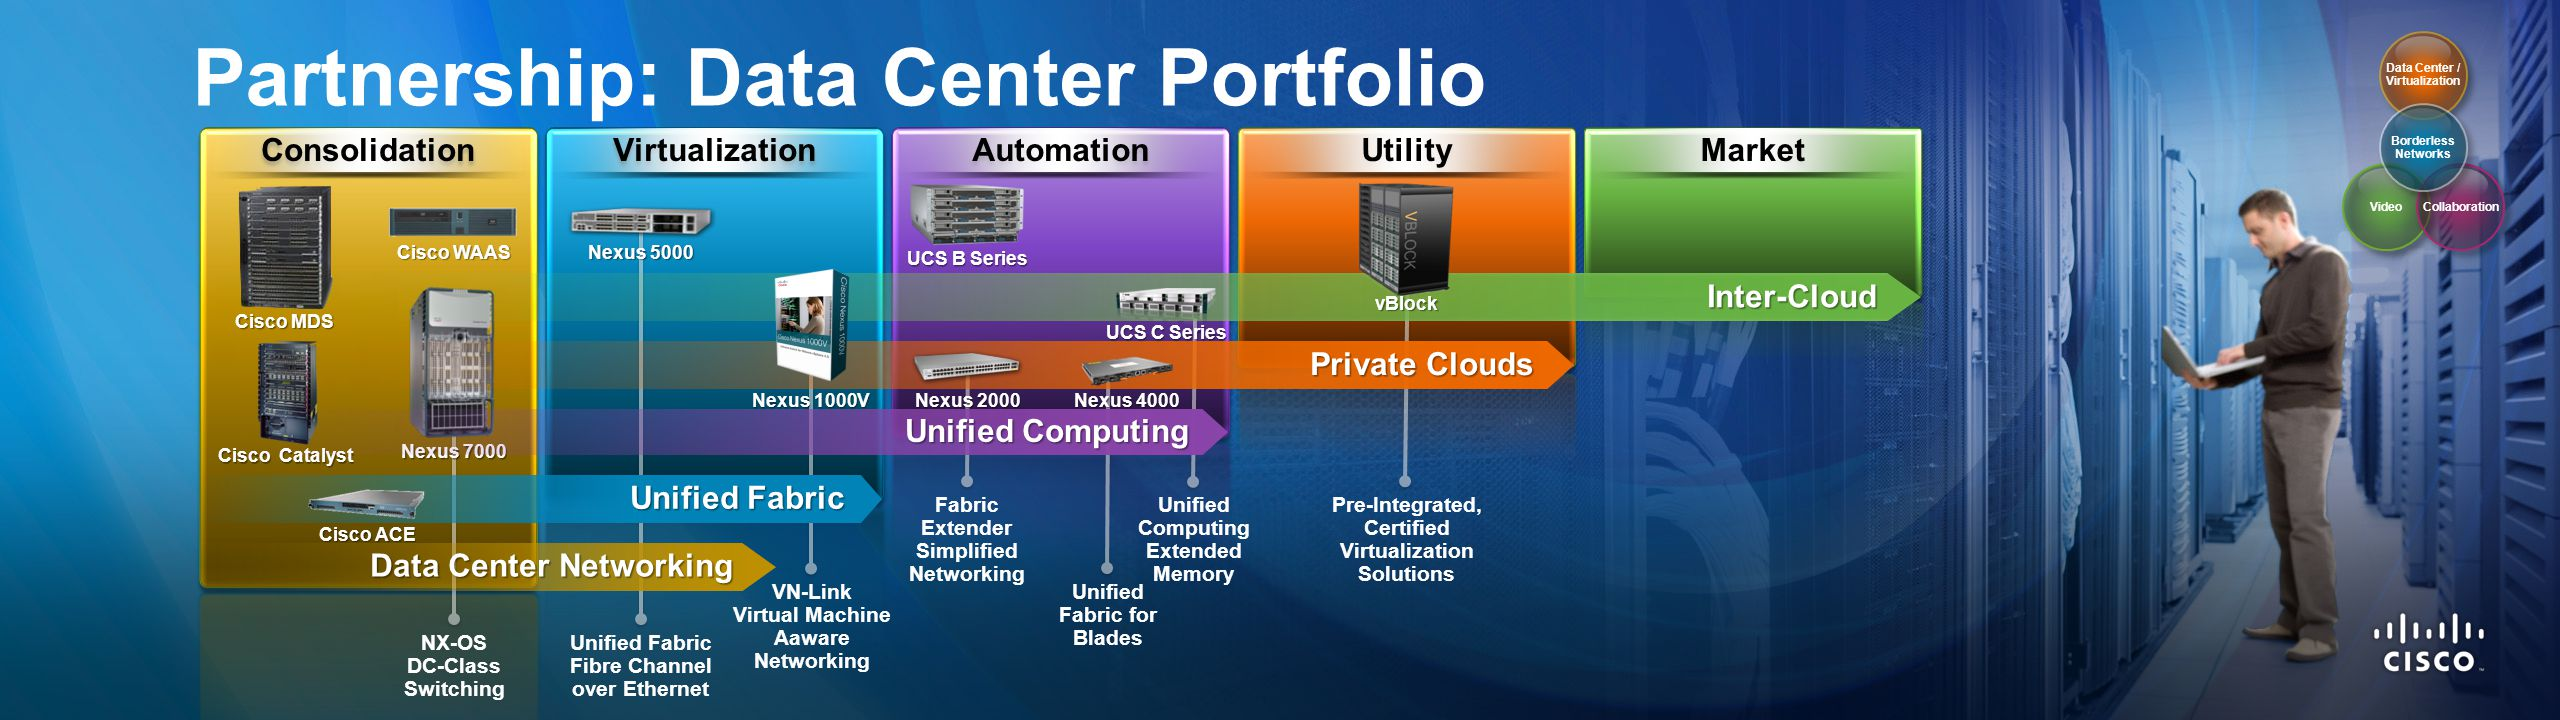 Consolidation Virtualization Automation Utility Market Partnership: Data Center Portfolio NX-OS DC-Class Switching Unified Fabric Fibre Channel over E